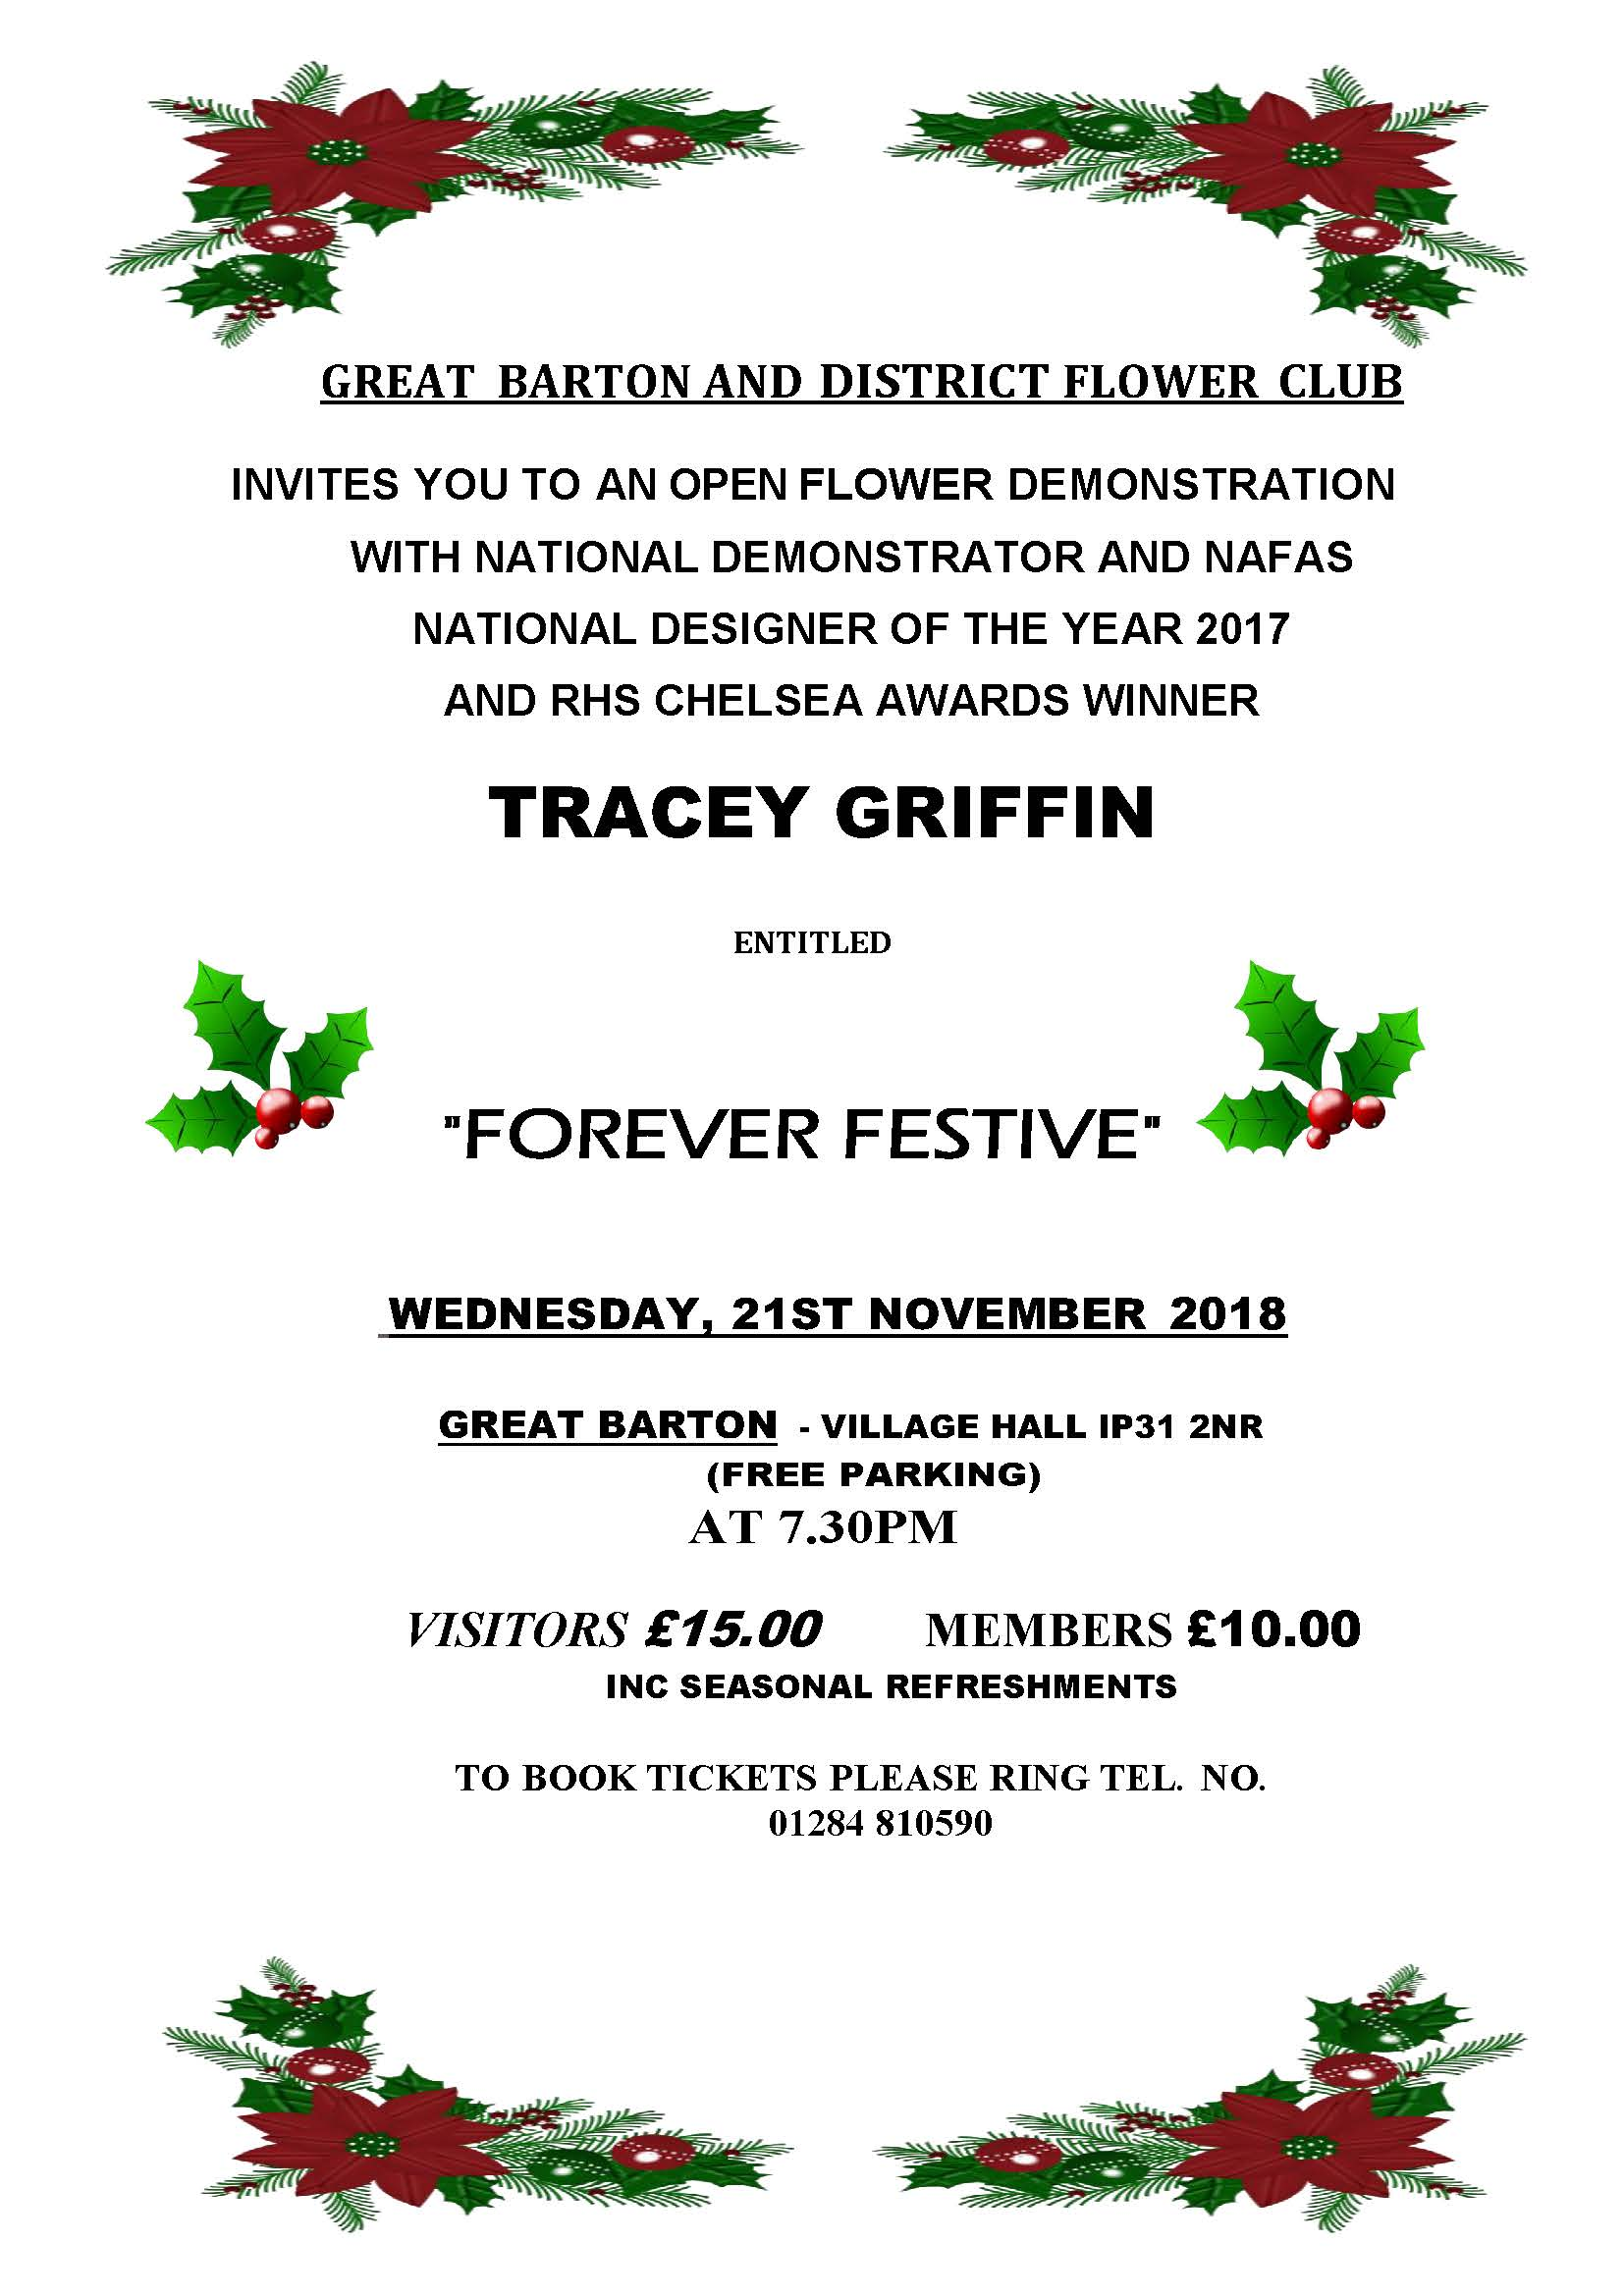 Gt Barton and District Flower Club - Floral Demonstration